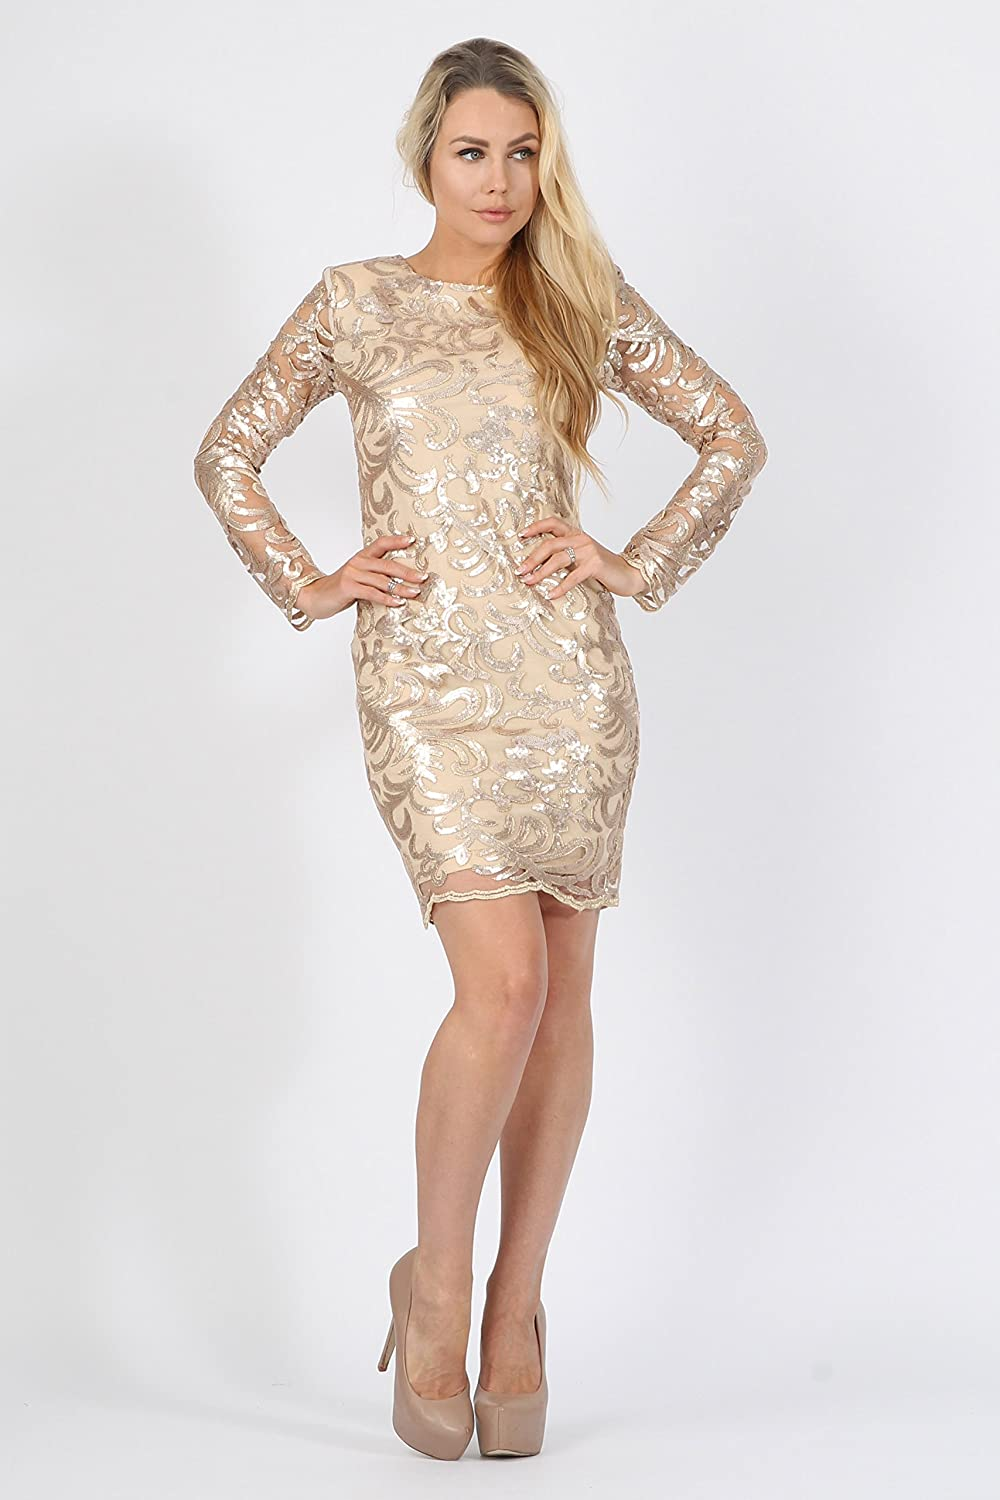 bf6d612214a MISSI LONDON Gold Mesh Floral Sequin Bodycon Party Dress (8)  Amazon.co.uk   Clothing